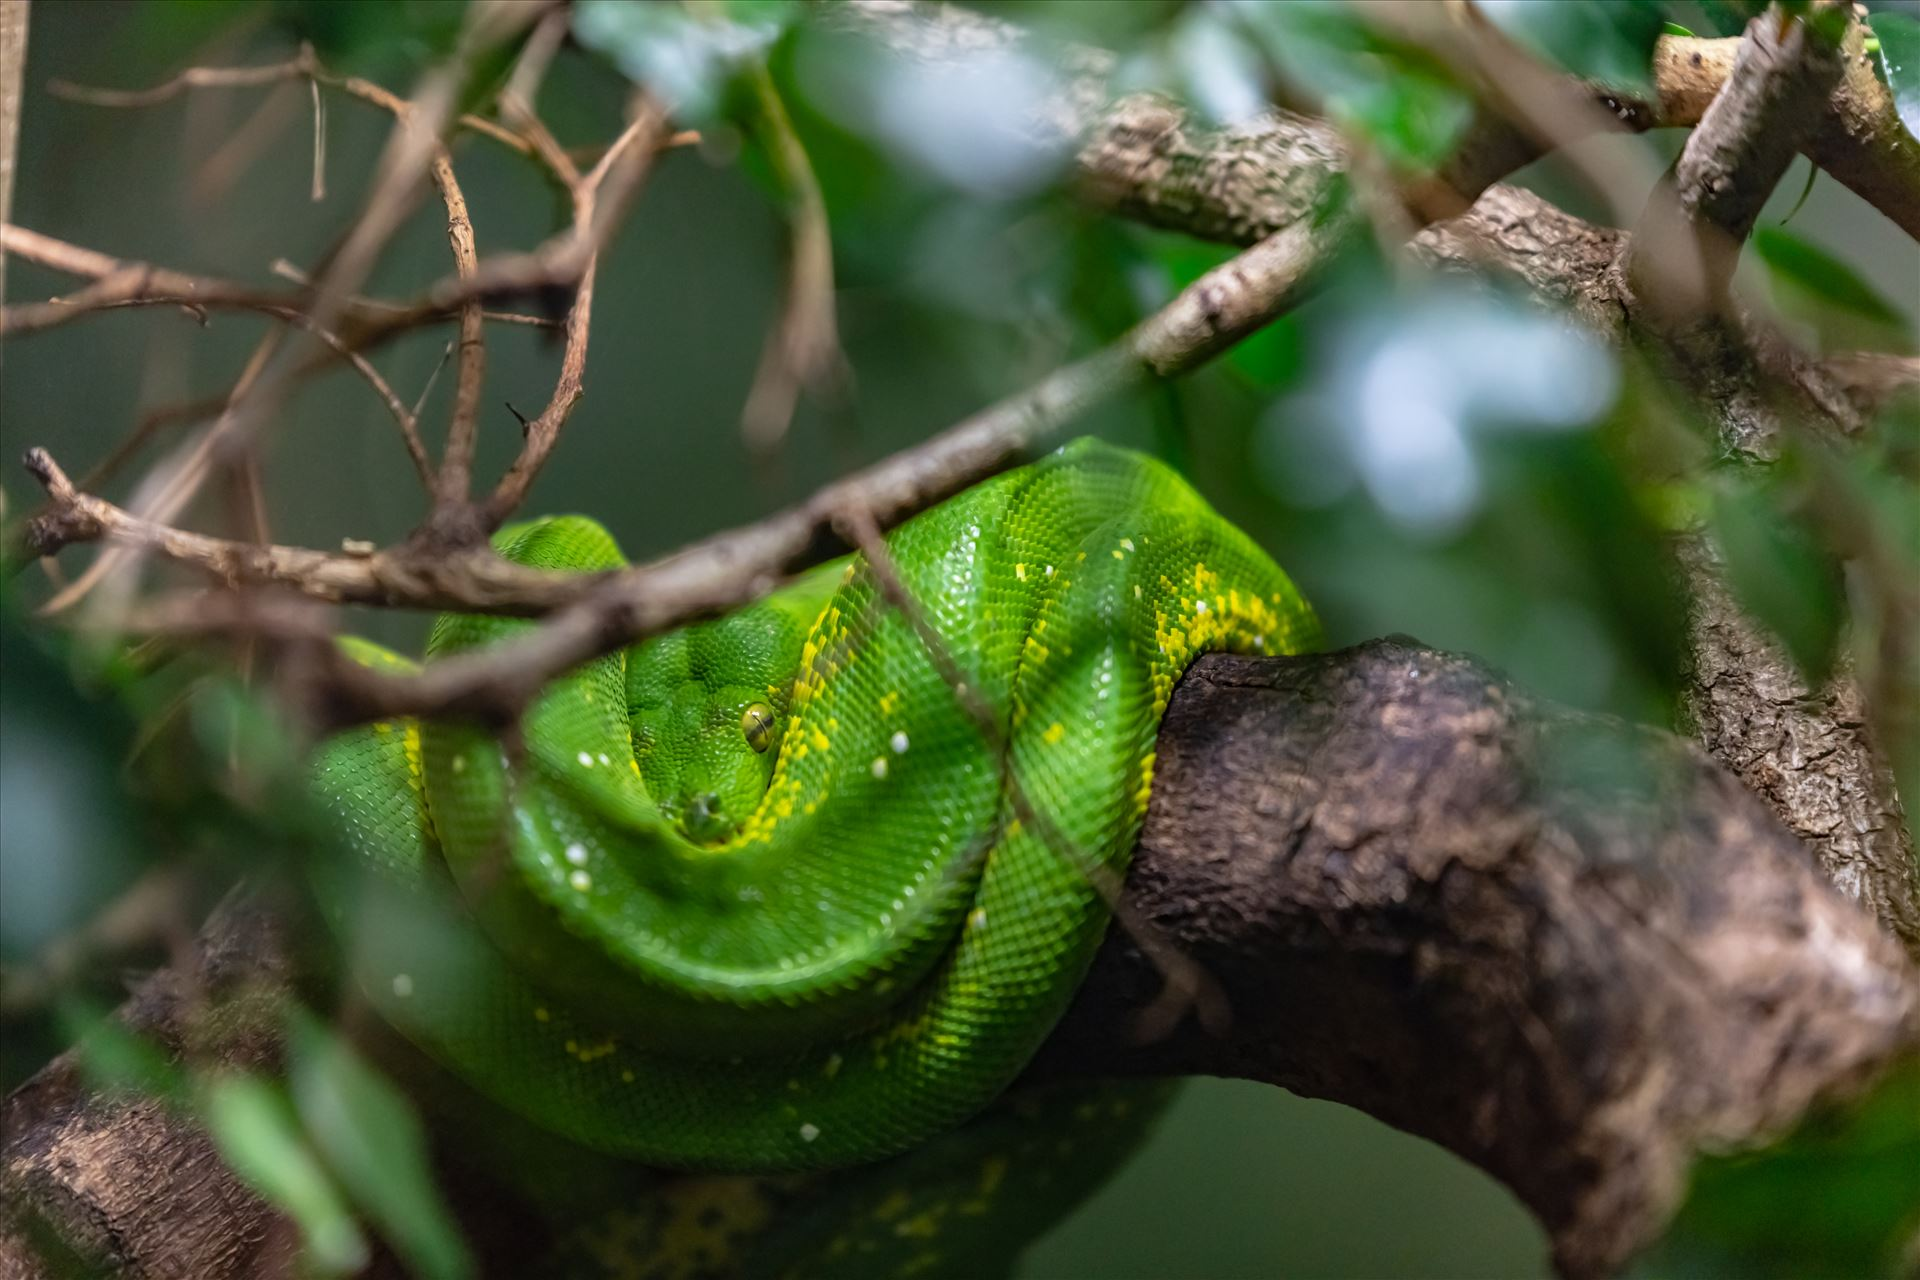 green tree python 8501457 ss as sf.jpg green tree python wrapped around tree limb by Terry Kelly Photography